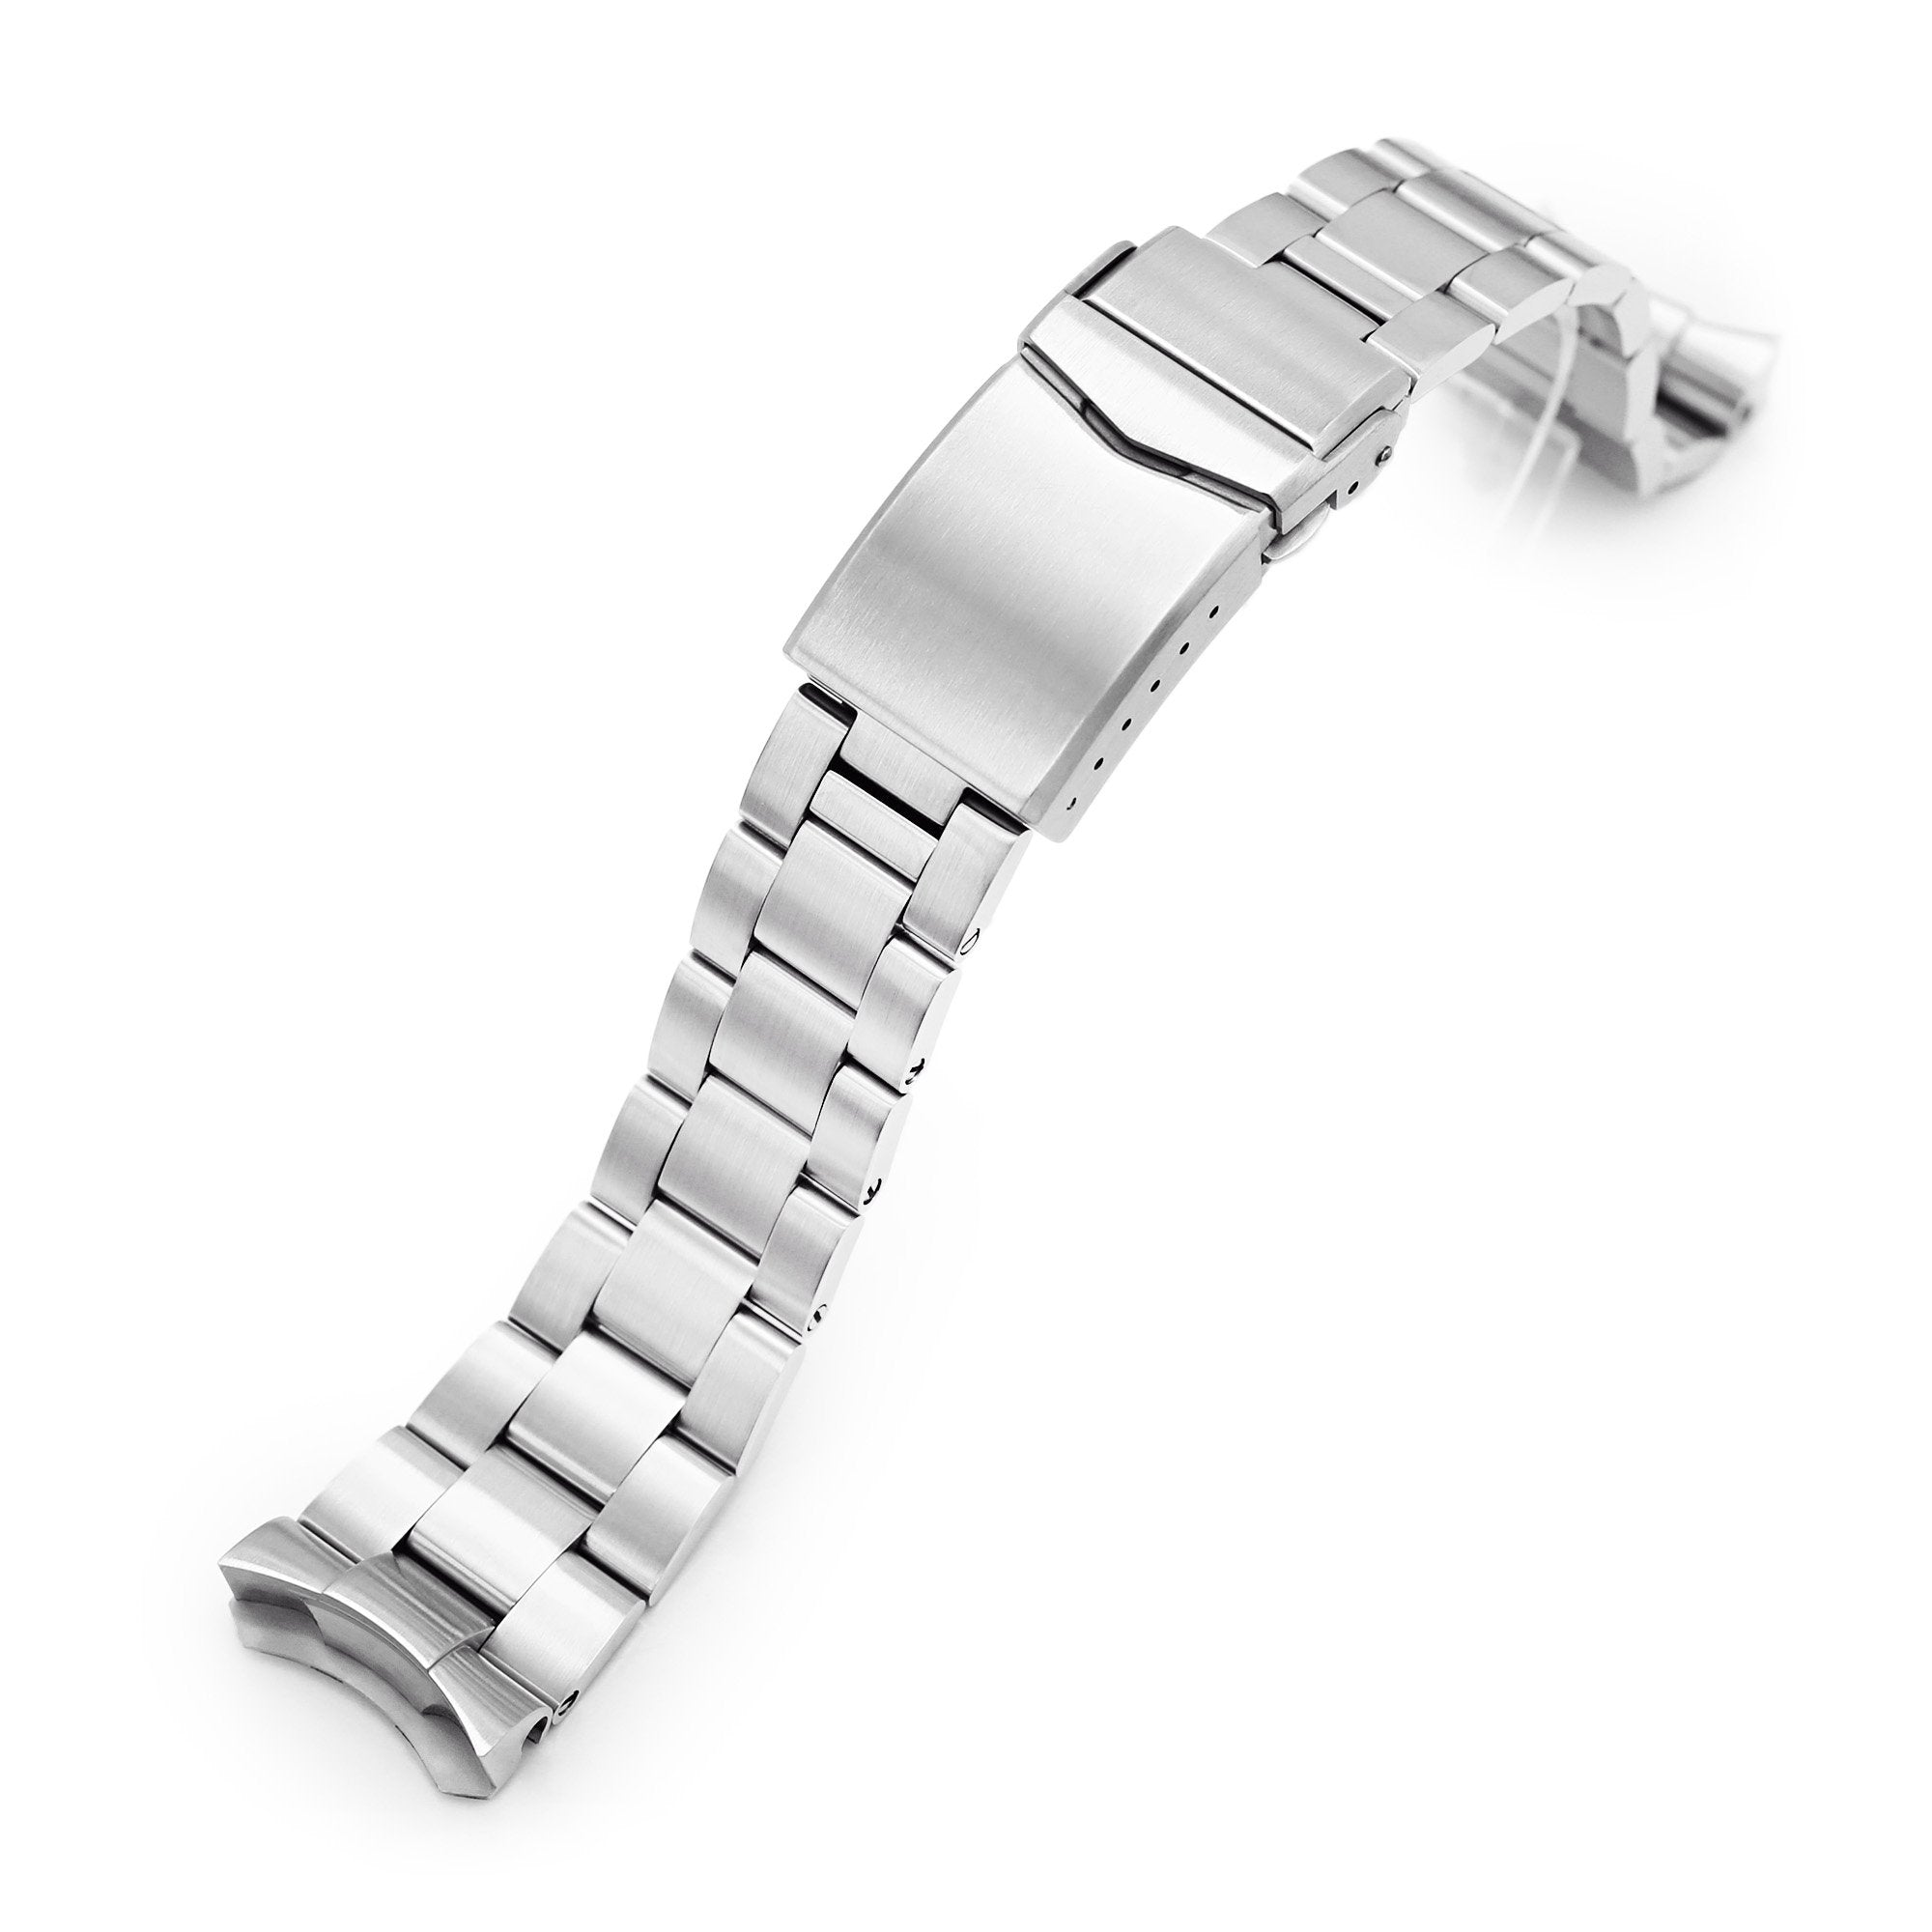 22mm Super-O Boyer 316L Stainless Steel Watch Band for Seiko 5, Brushed V-Clasp Strapcode Watch Bands